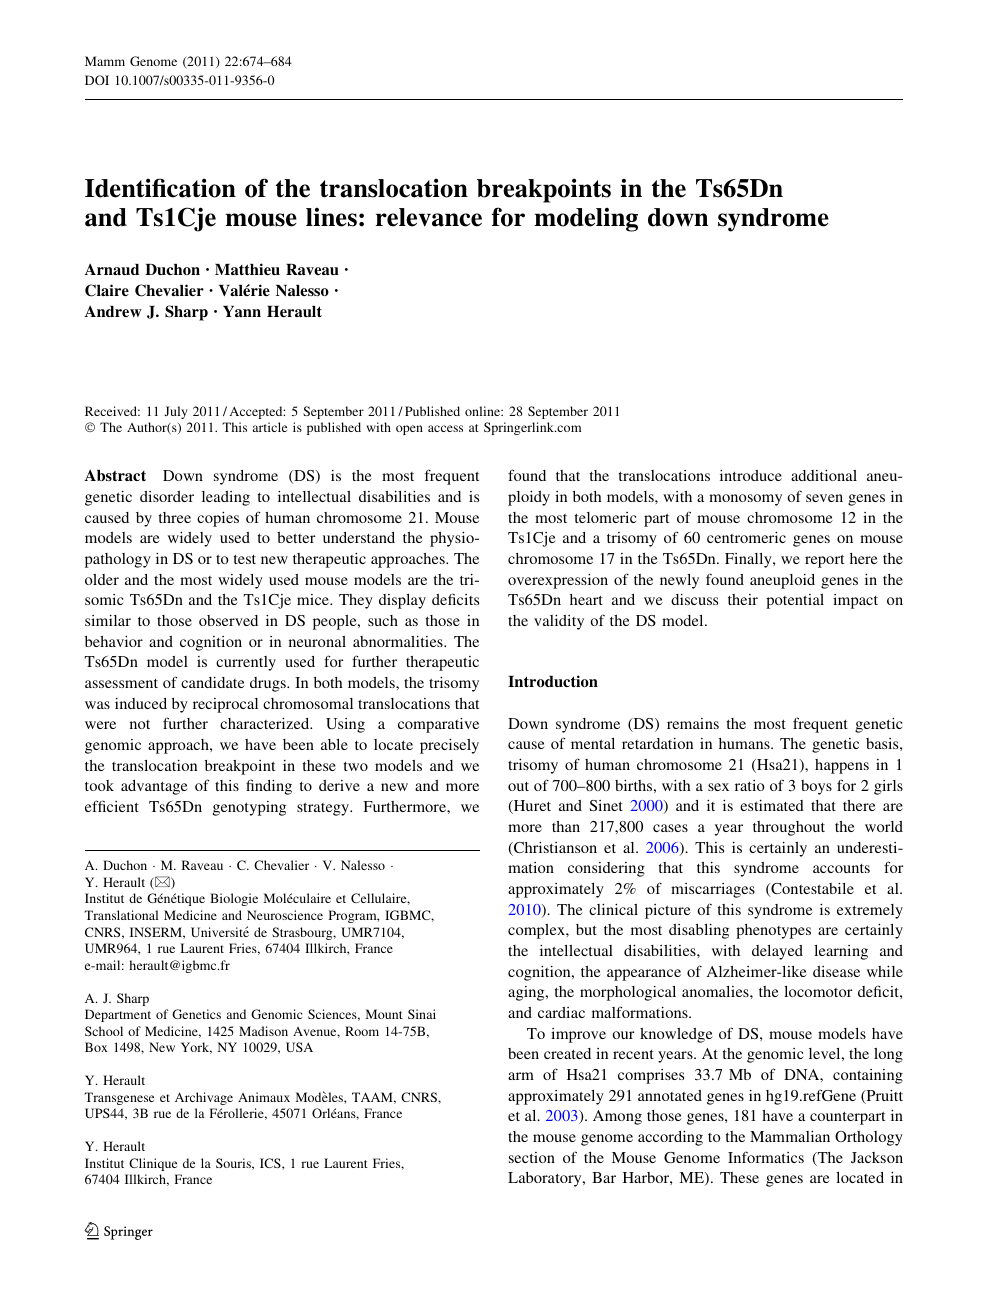 Identification of the translocation breakpoints in the Ts65Dn and